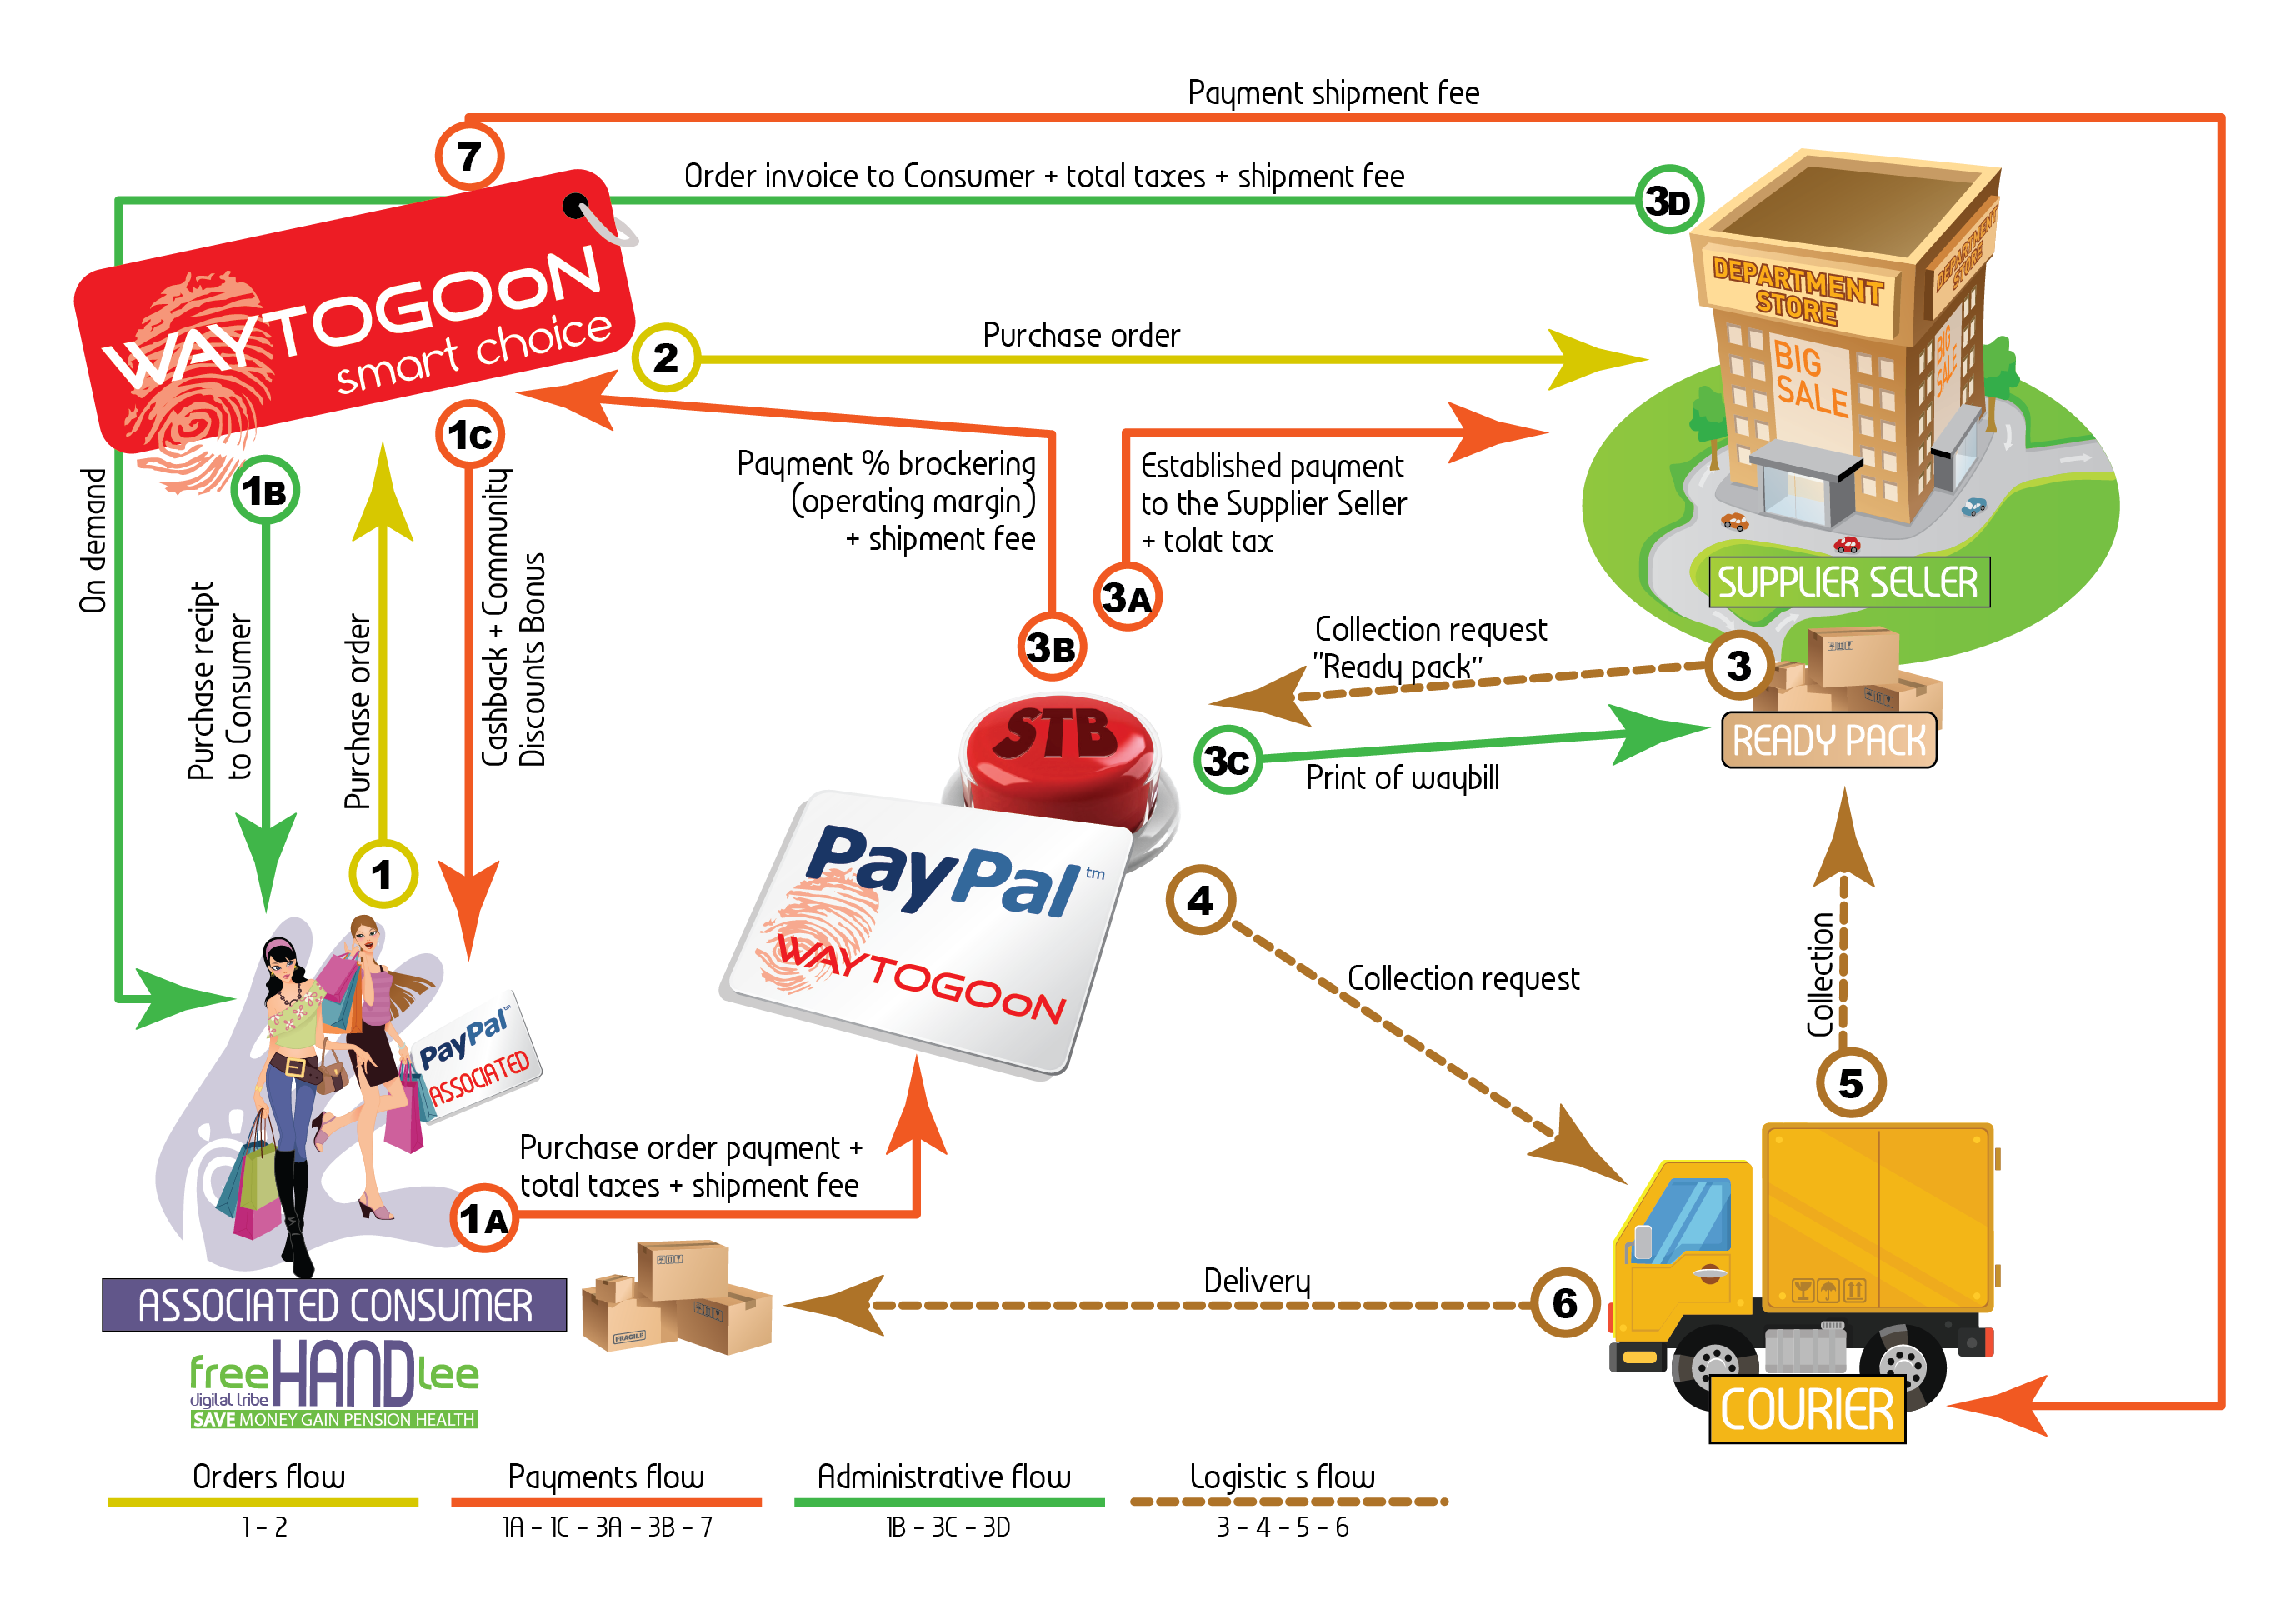 Affiliate operational flow System of the WAYTOGOoN Drop Shipping